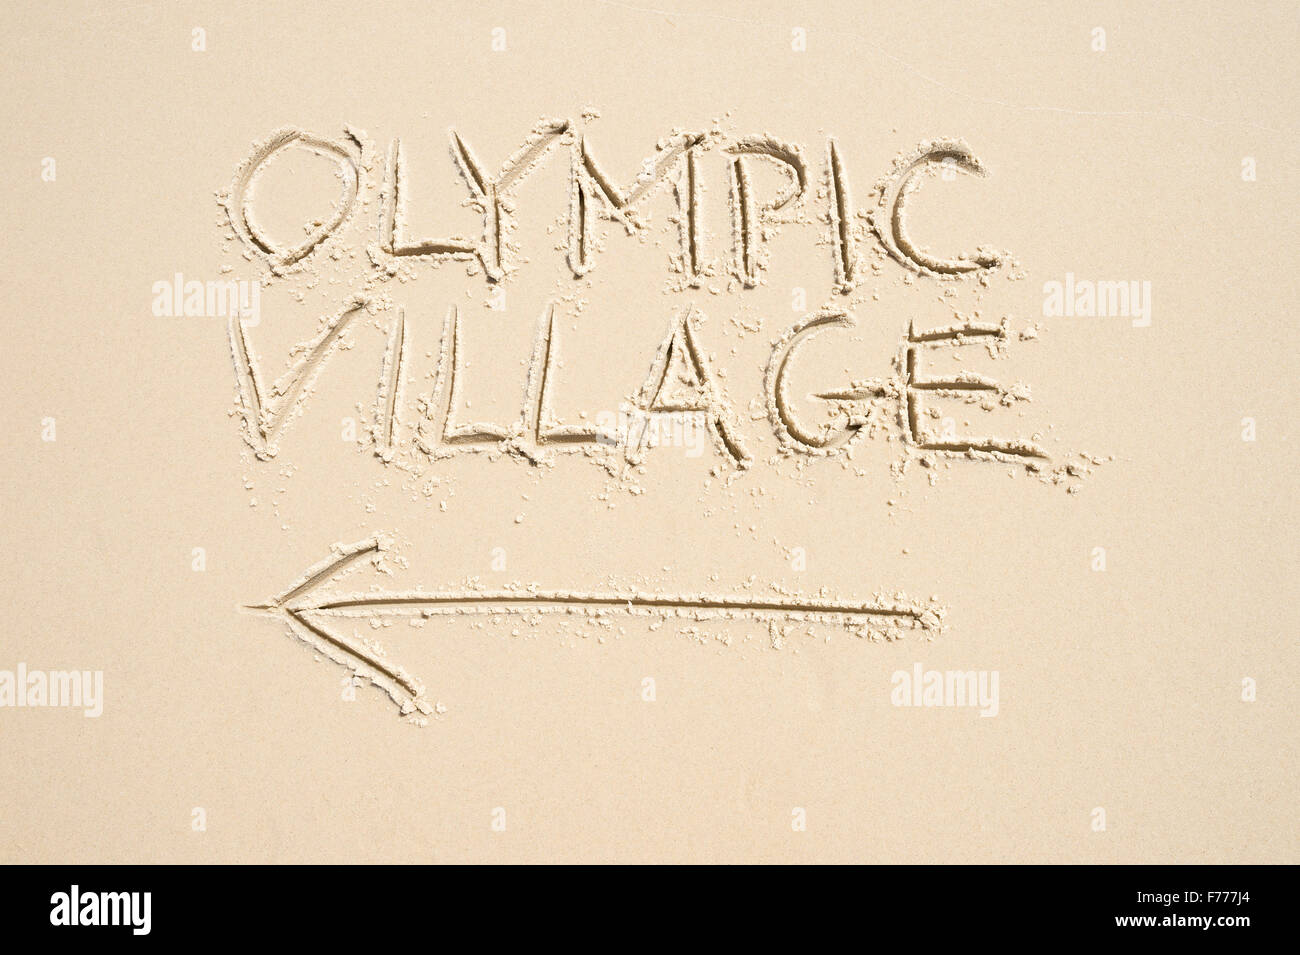 RIO DE JANEIRO, BRAZIL - NOVEMBER 10, 2015: Handwritten message with arrow pointing the way to Olympic Village written - Stock Image